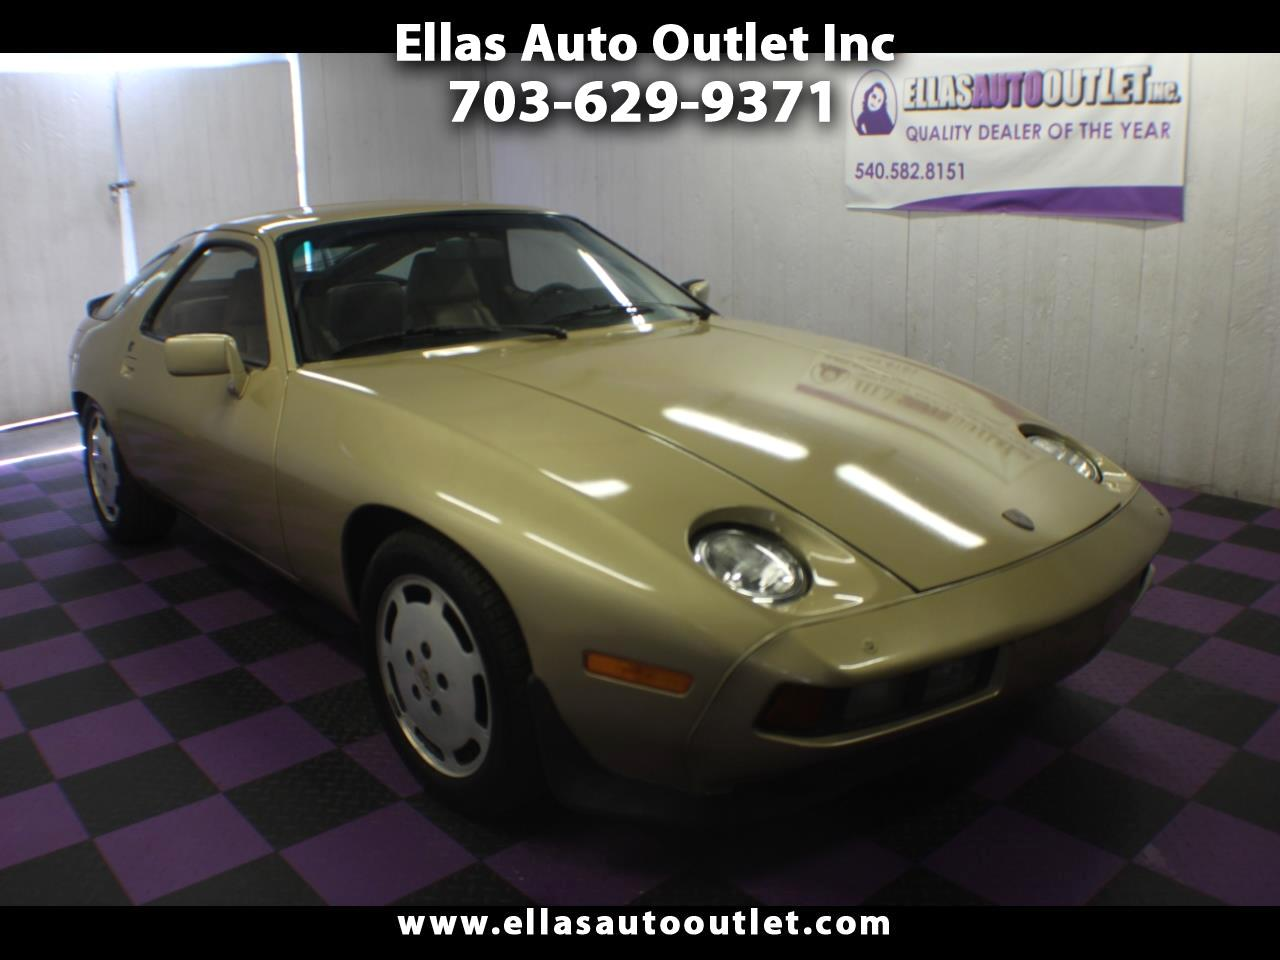 1983 Porsche 928S 2dr Coupe 5-Spd